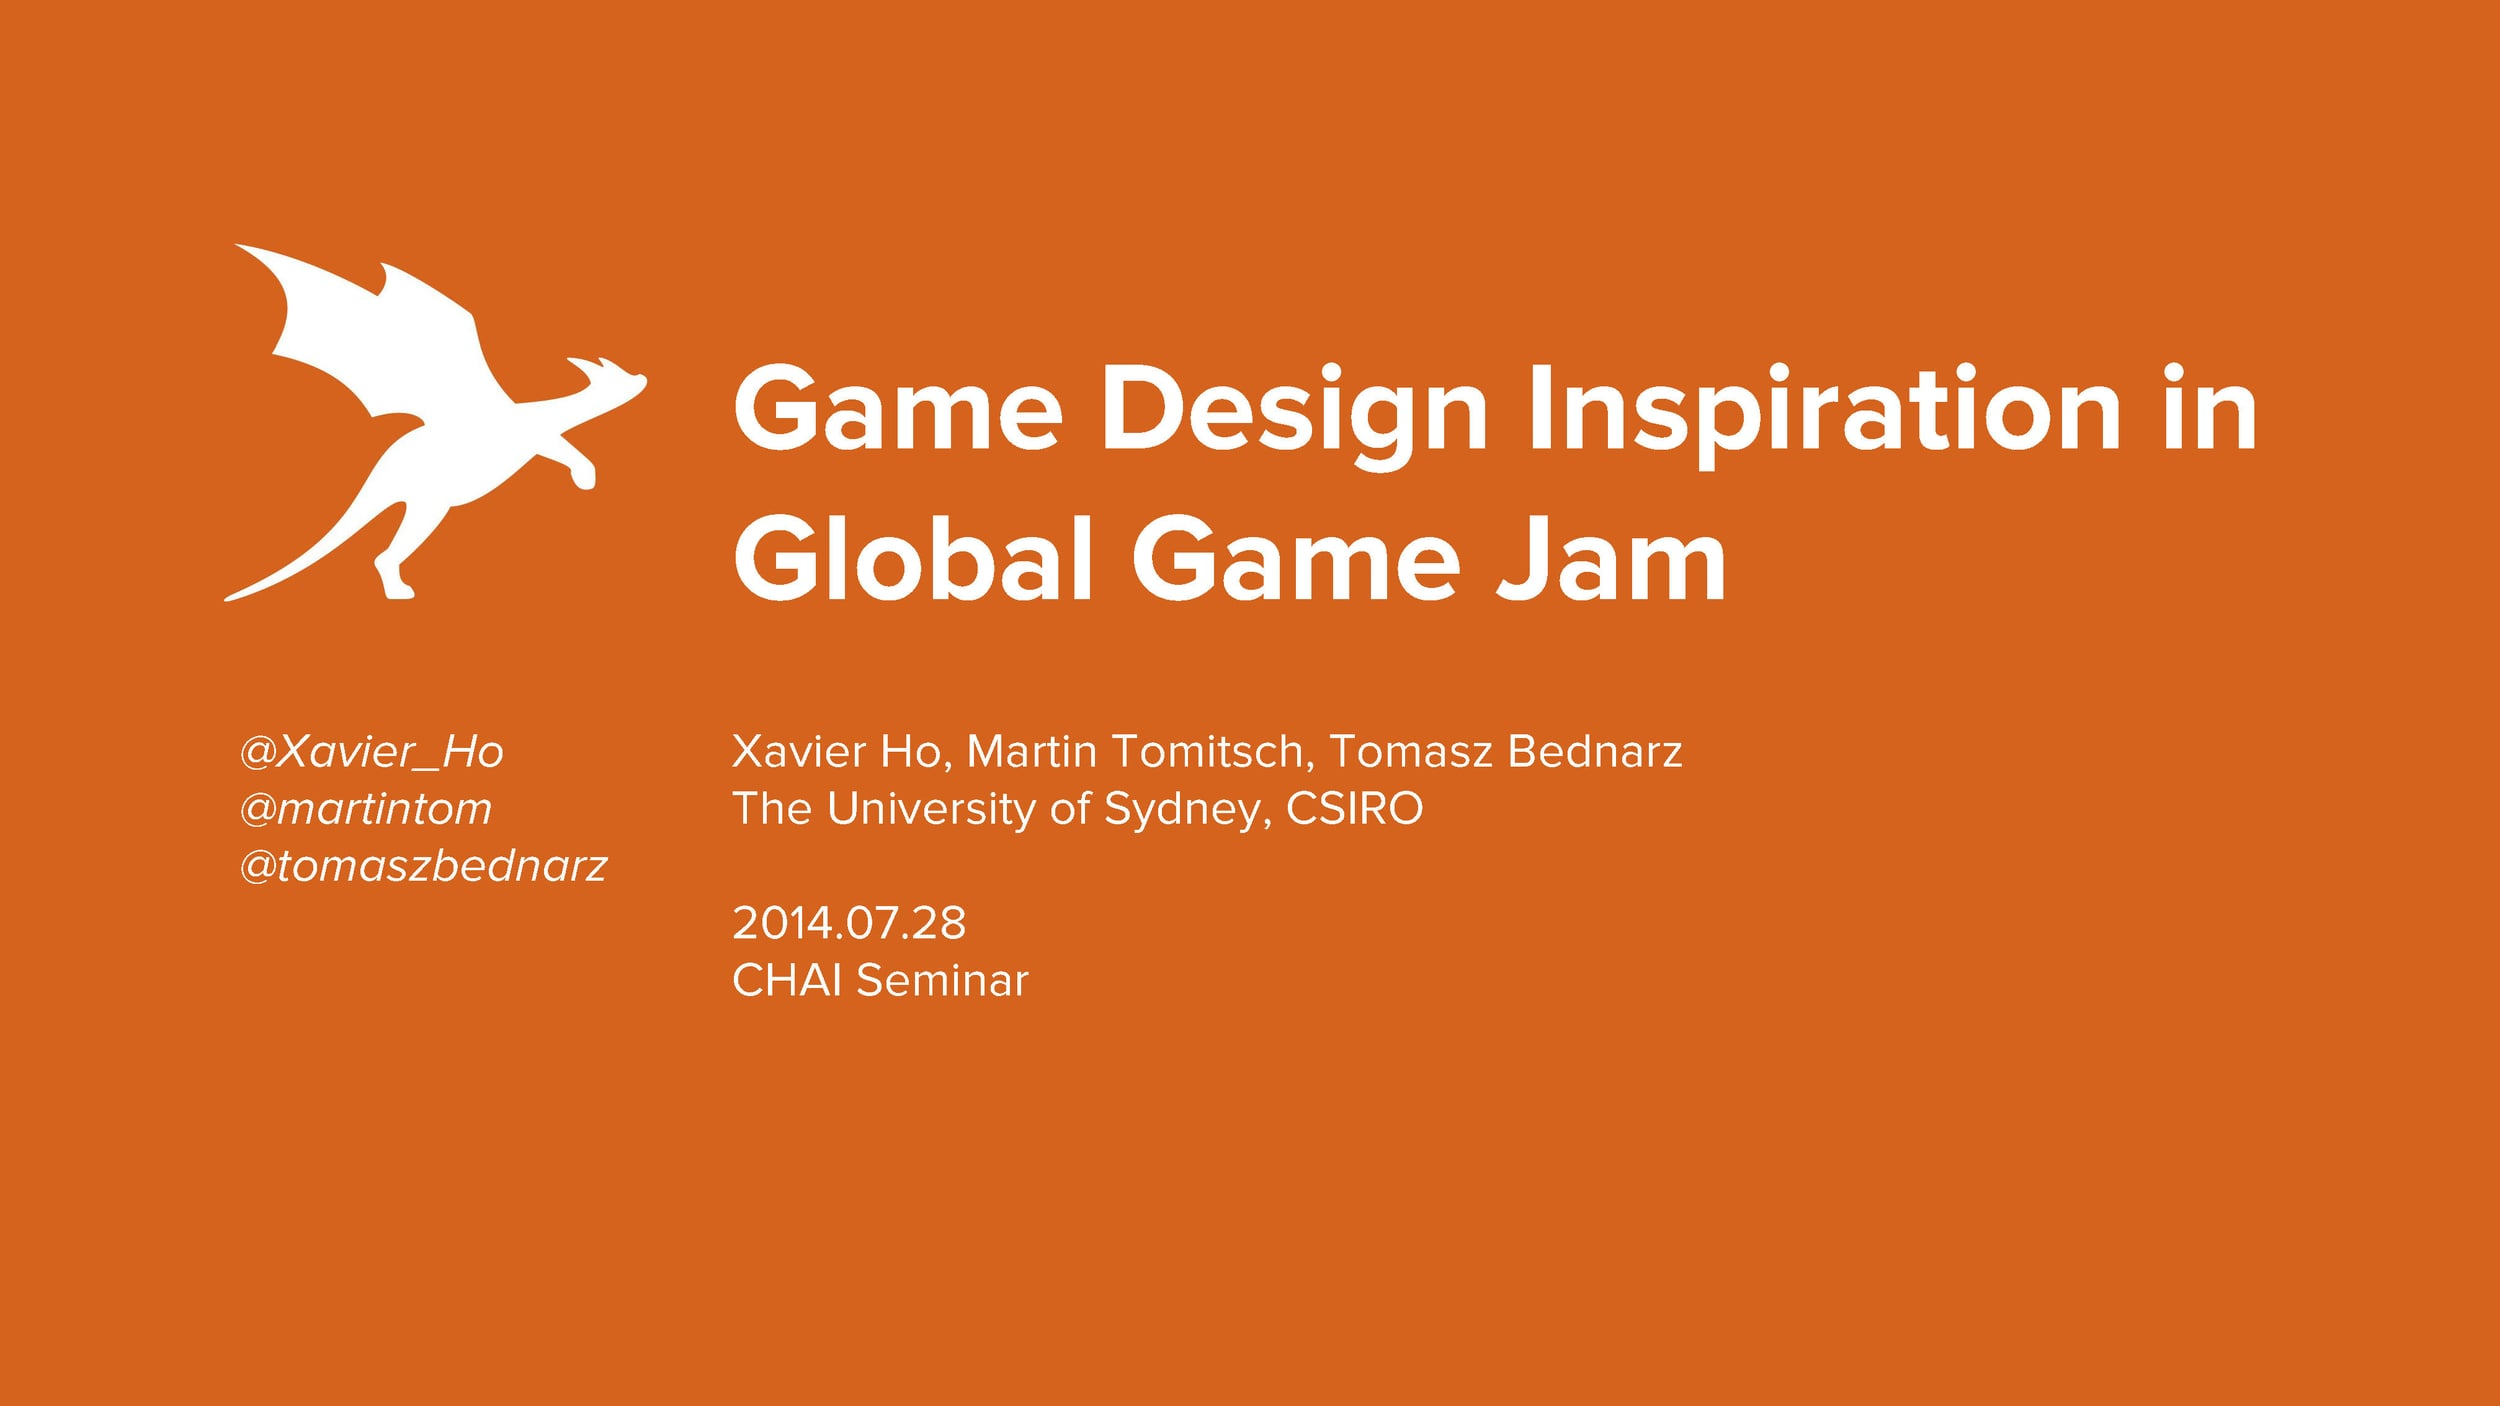 Game Design Inspiration in Global Game Jam_Page_01.jpg